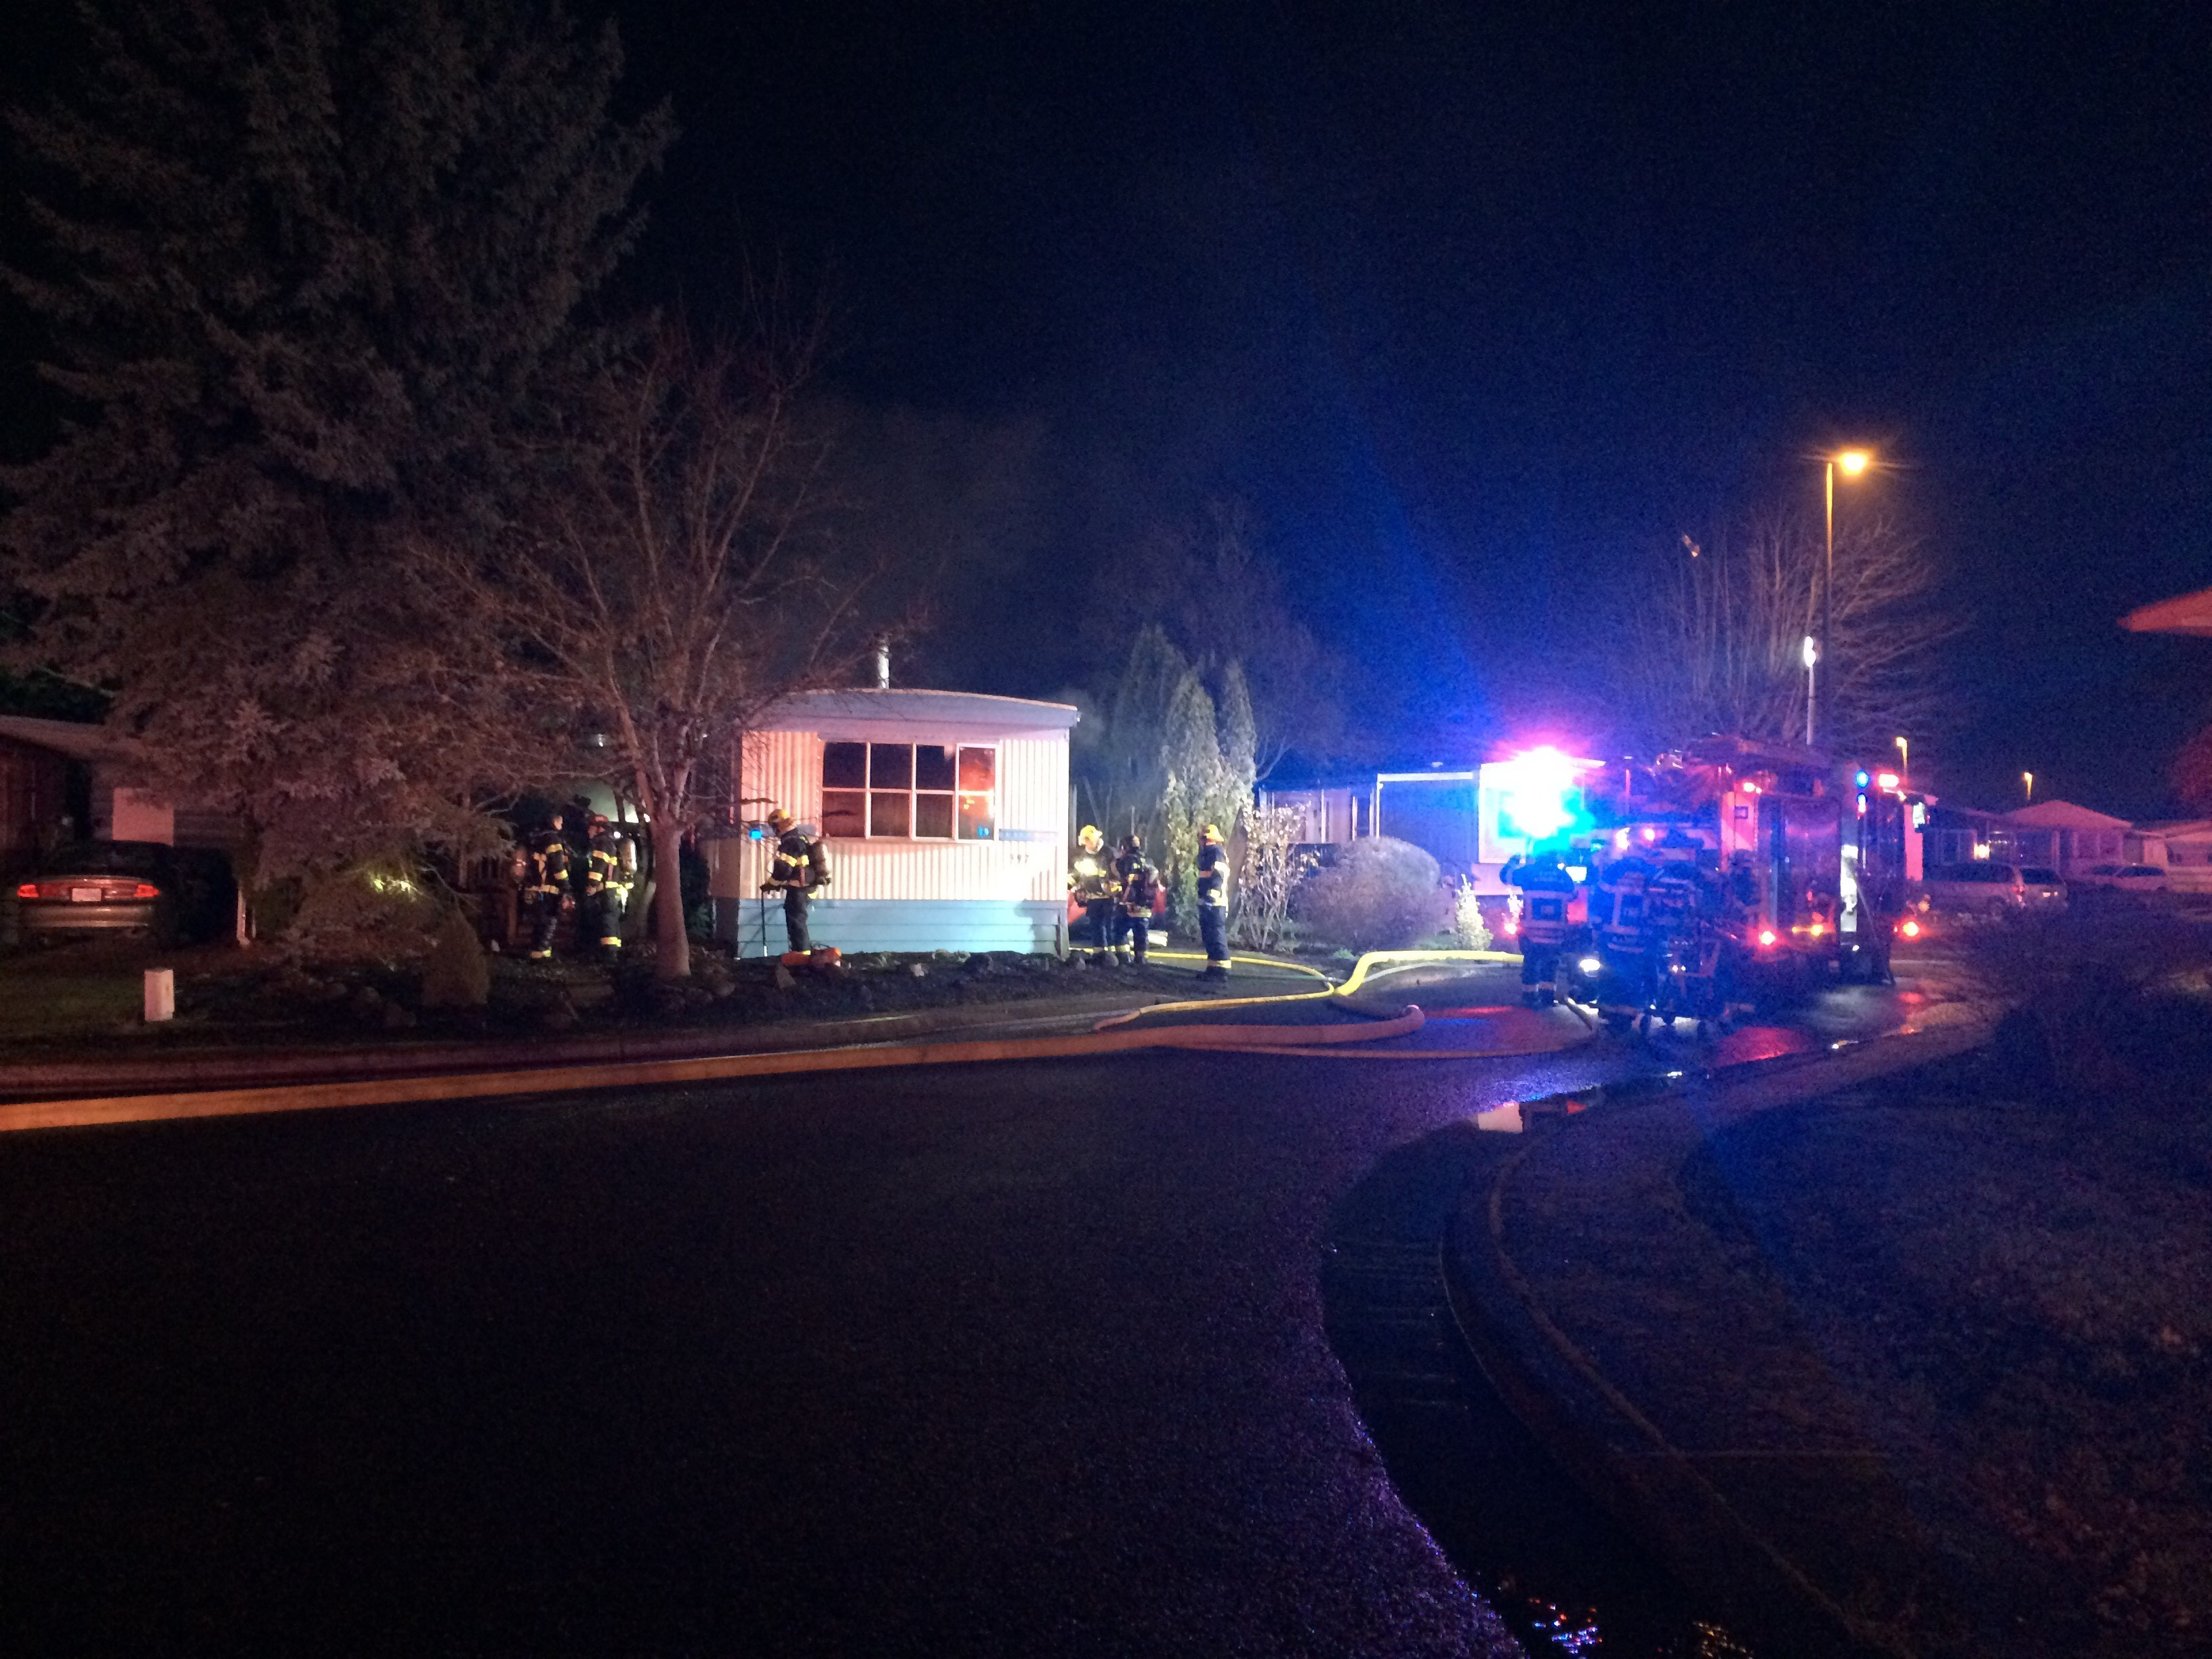 A mobile home fire happened around 9 p.m. at the Daneland Mobile Home Park at 1199 Terry Street in Eugene, Dec. 26, 2017. (SBG)